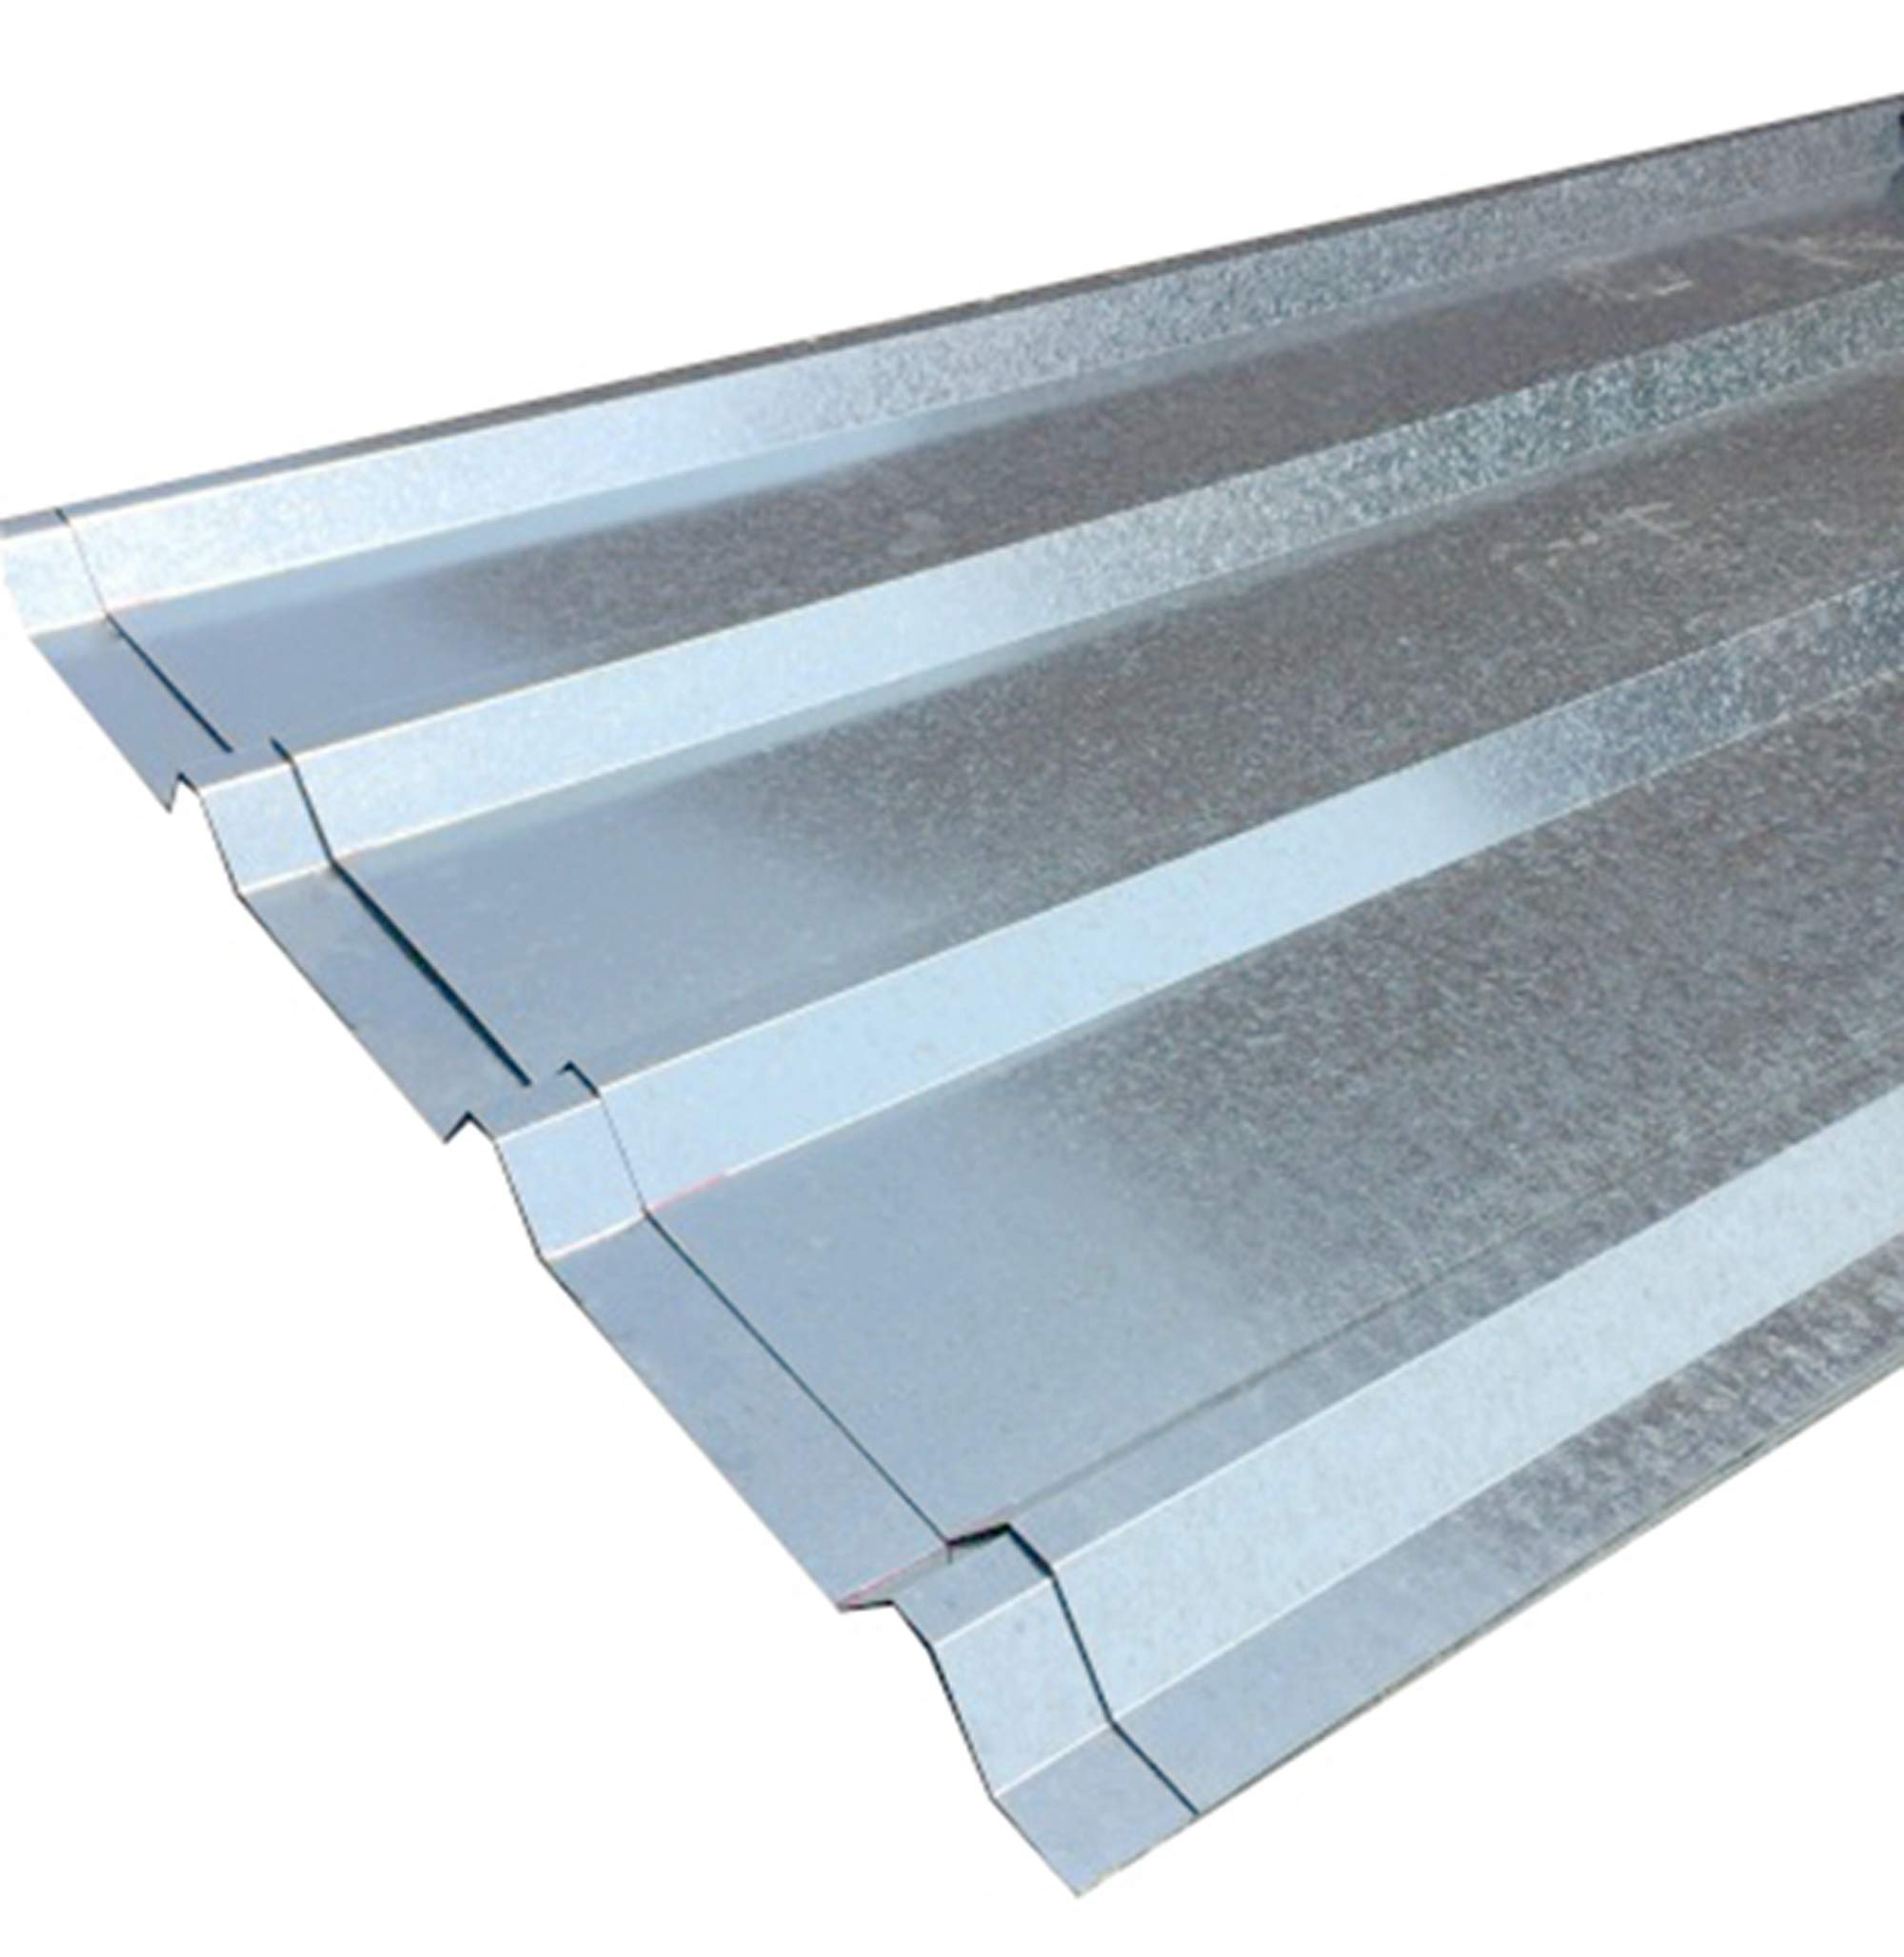 FixtureDisplays Unit of 10 Sheets of Corrugated Metal Roof Sheets Galvanized Metal 11525-10PC by FixtureDisplays